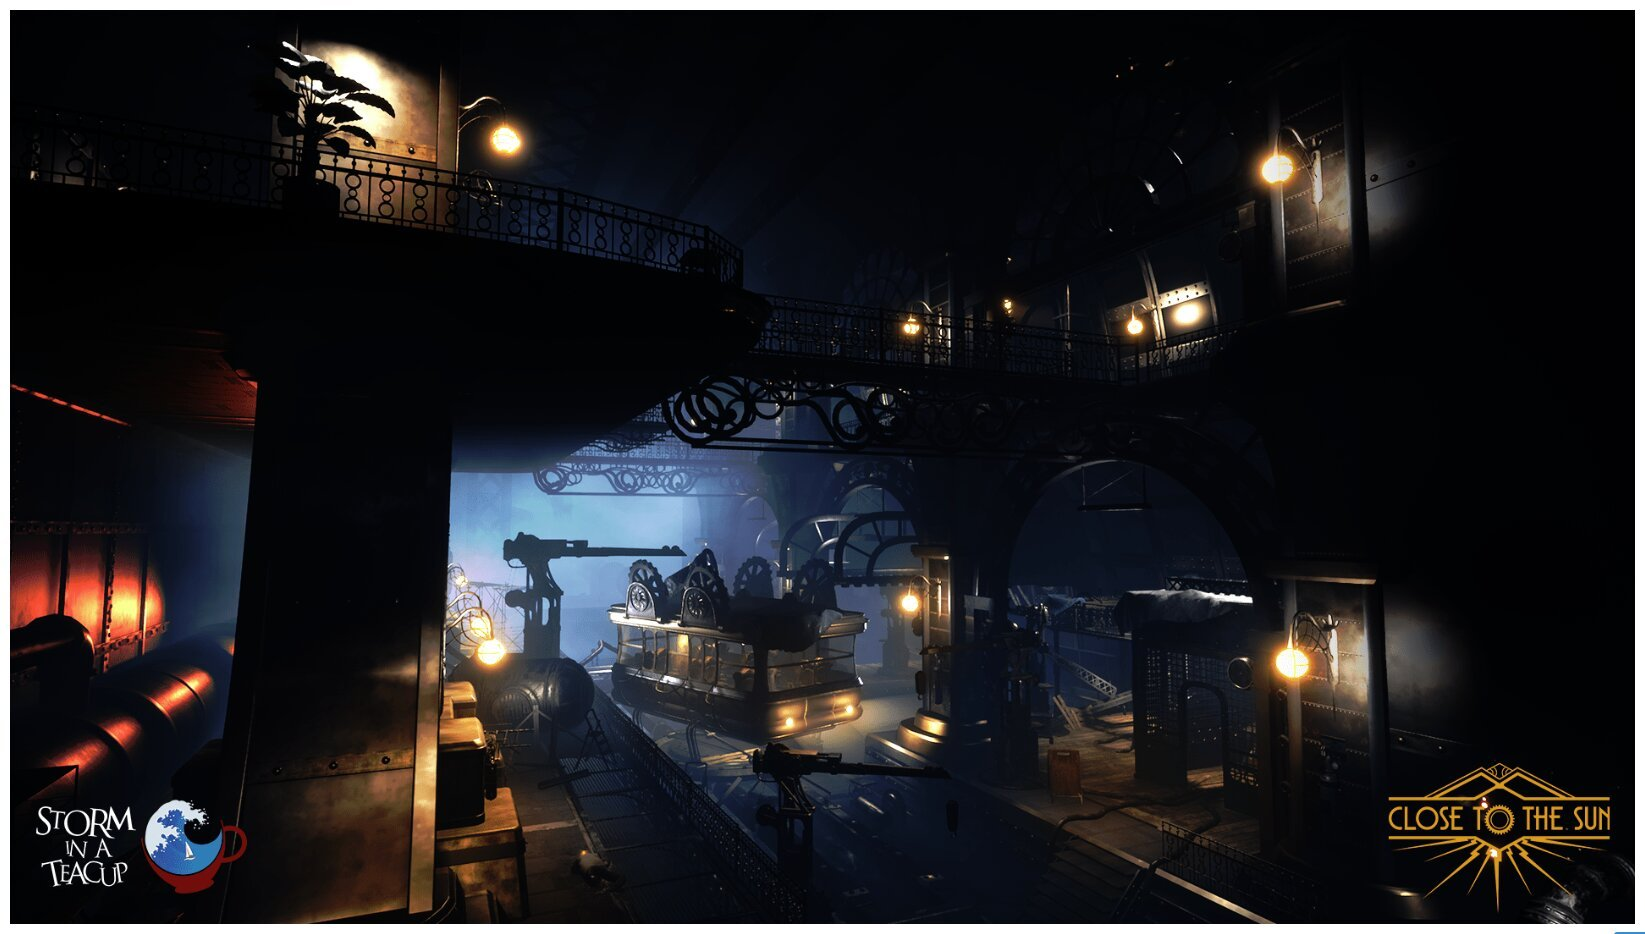 Image 7 : Close to the Sun, fils spirituel de Bioshock, passe à Unreal Engine 4, et c'est beau !